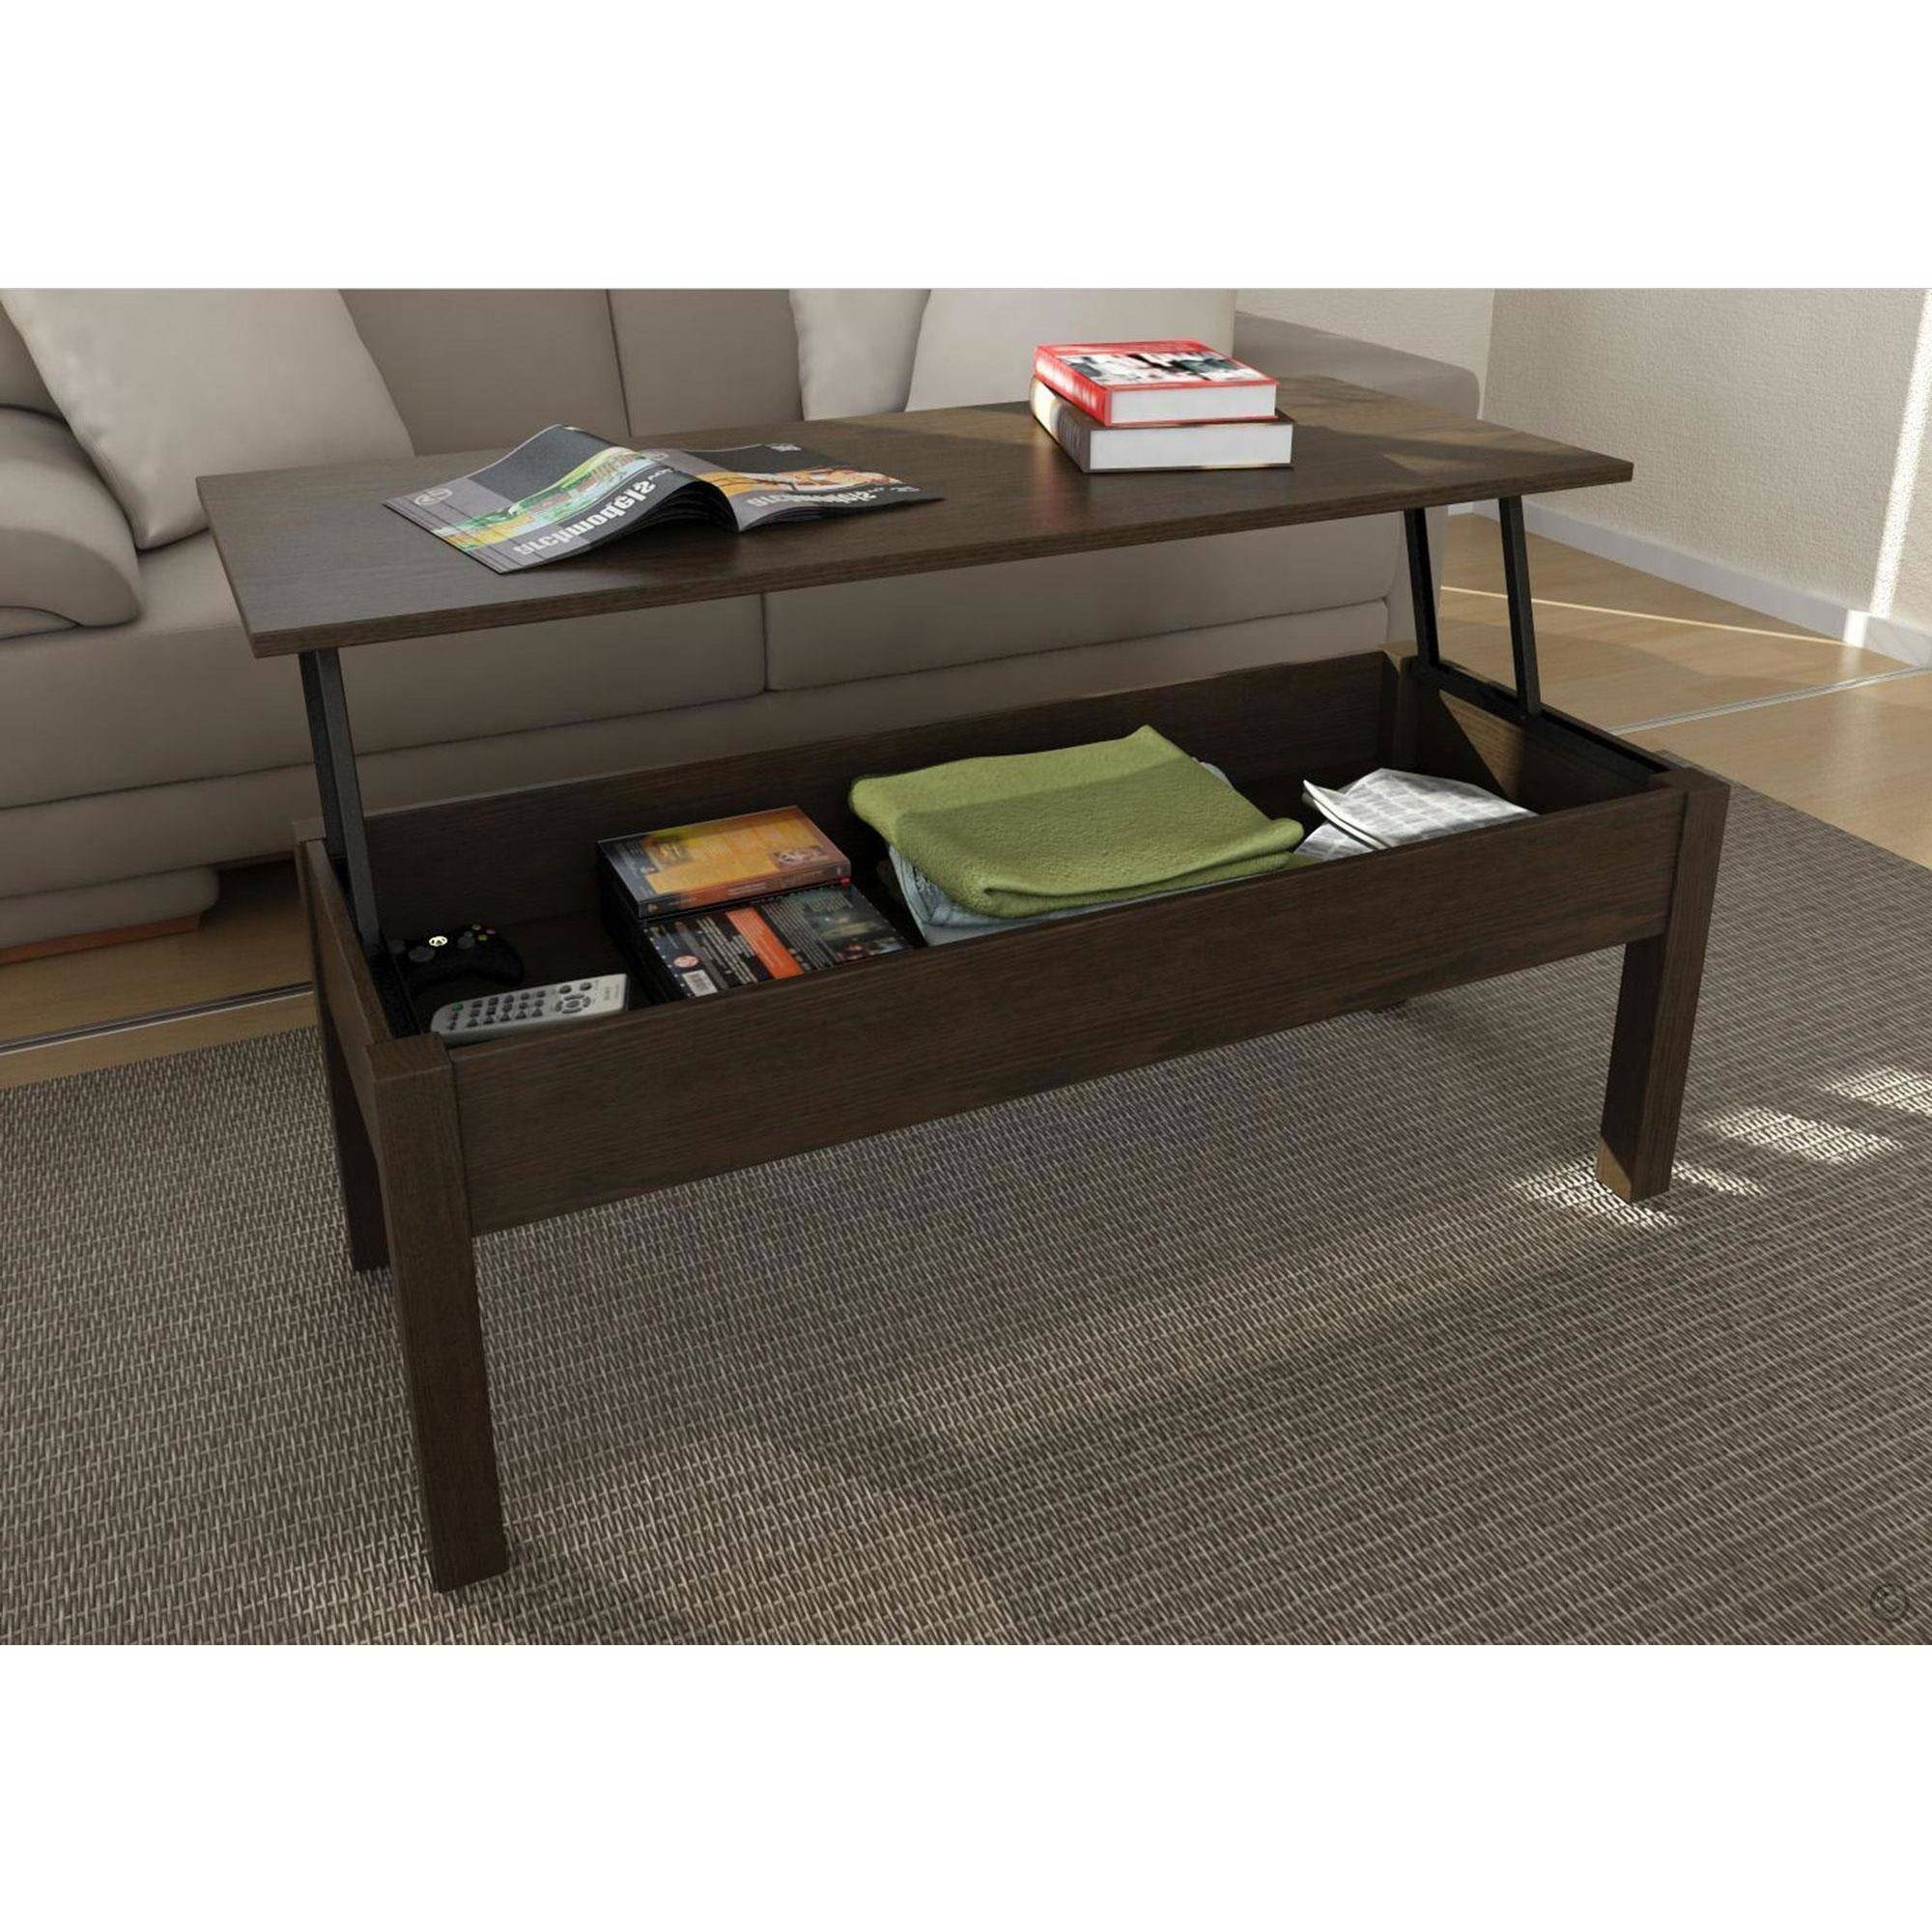 Mainstays Lift-Top Coffee Table, Multiple Colors - Walmart inside Coffee Tables Extendable Top (Image 18 of 30)